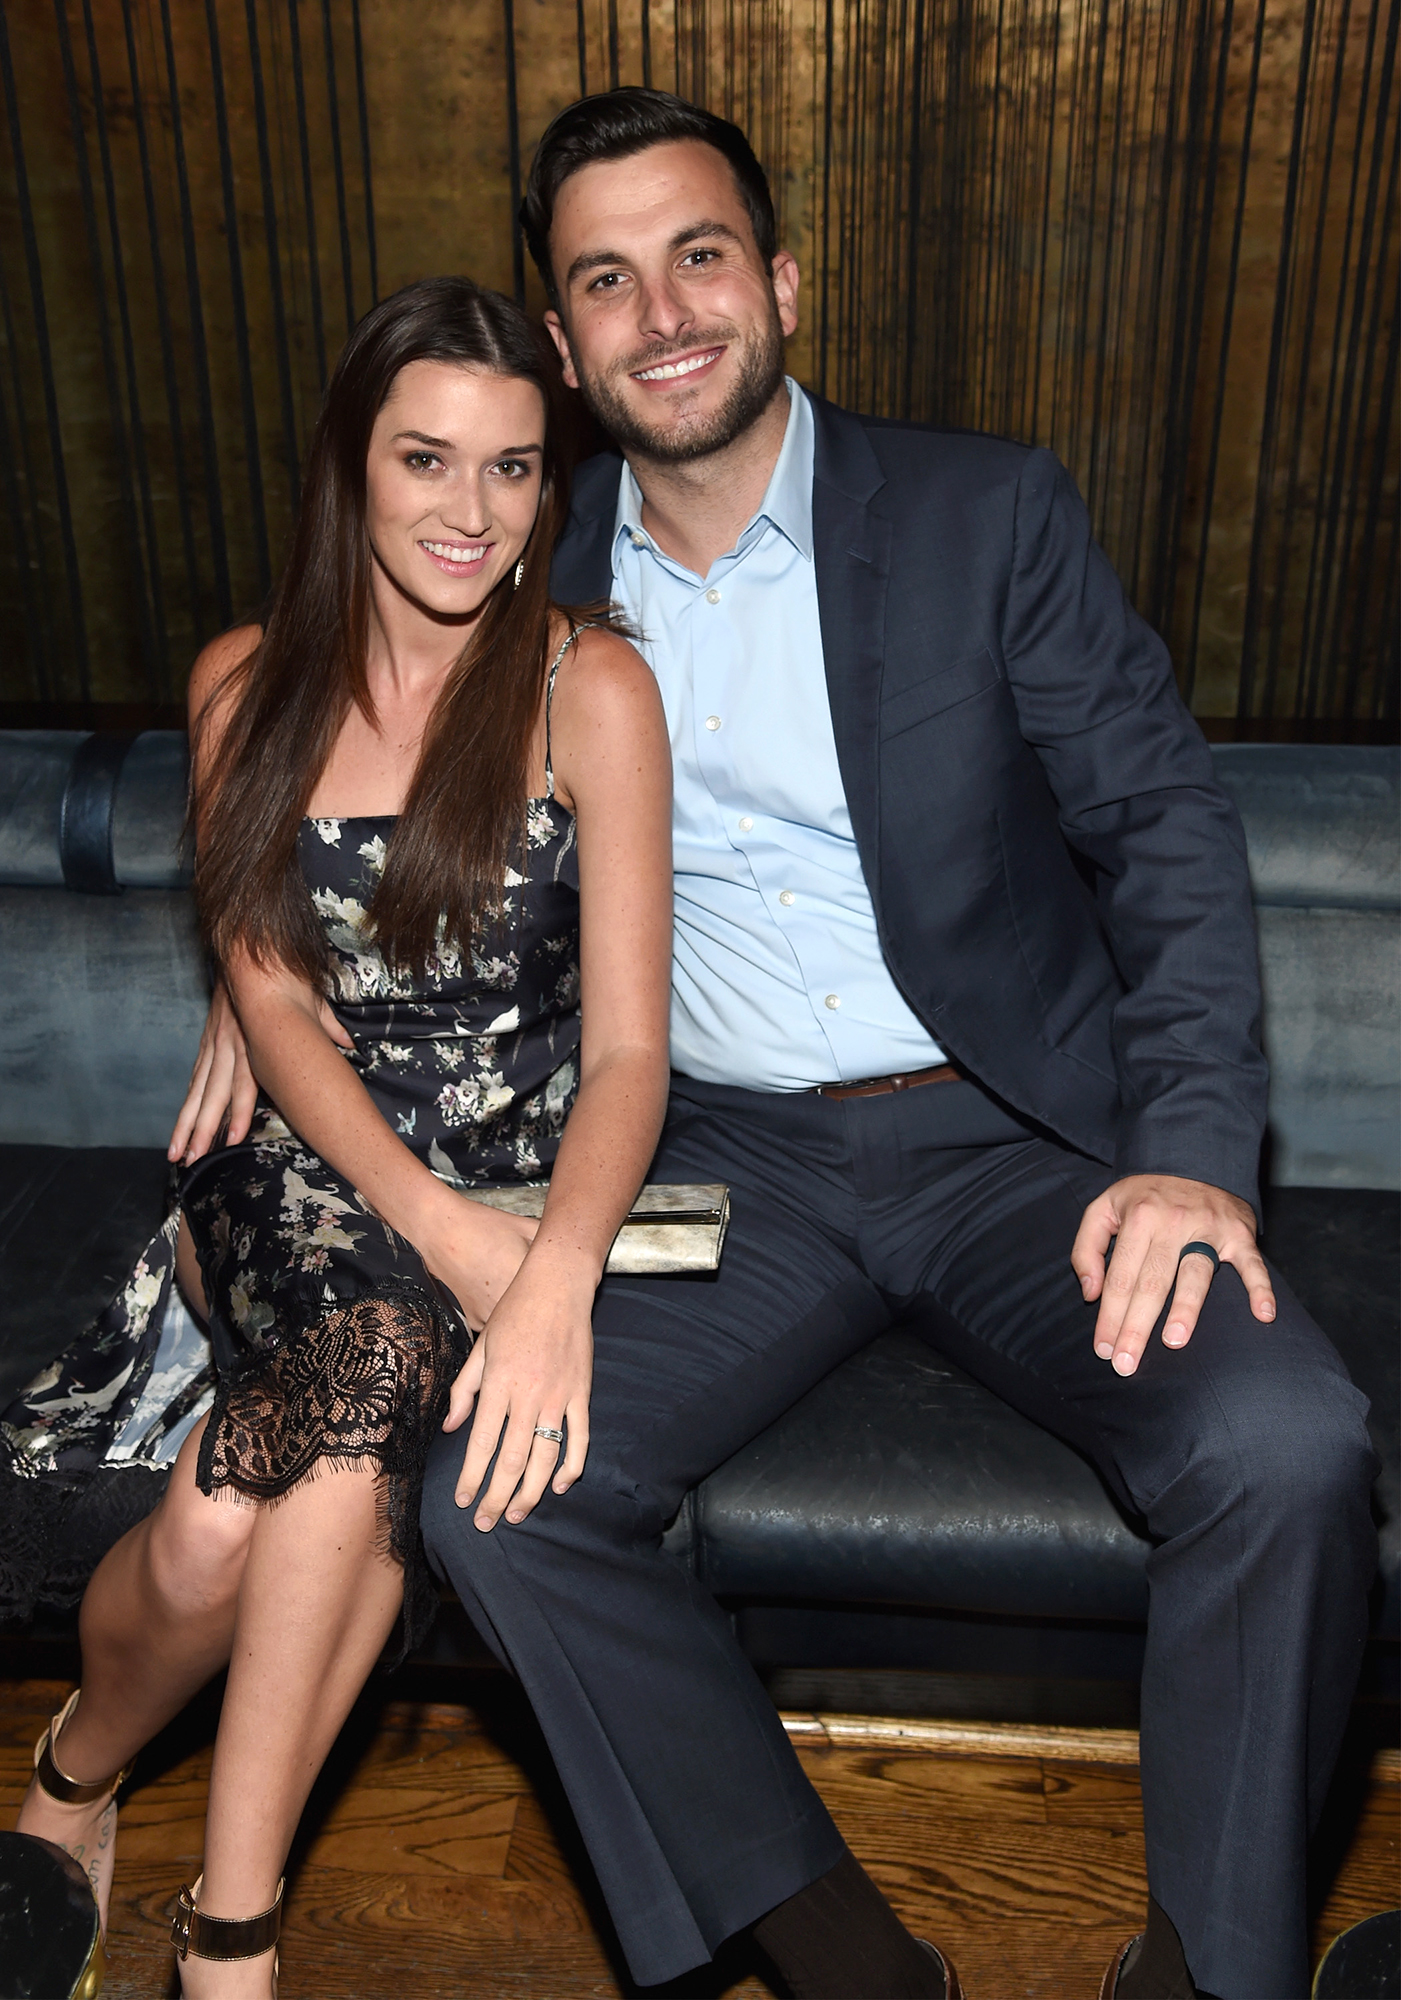 Every Bachelor Nation Couple That Has Tied the Knot - A match made in Paradise! The duo met during Bachelor in Paradise season 2 and married in January 2016.